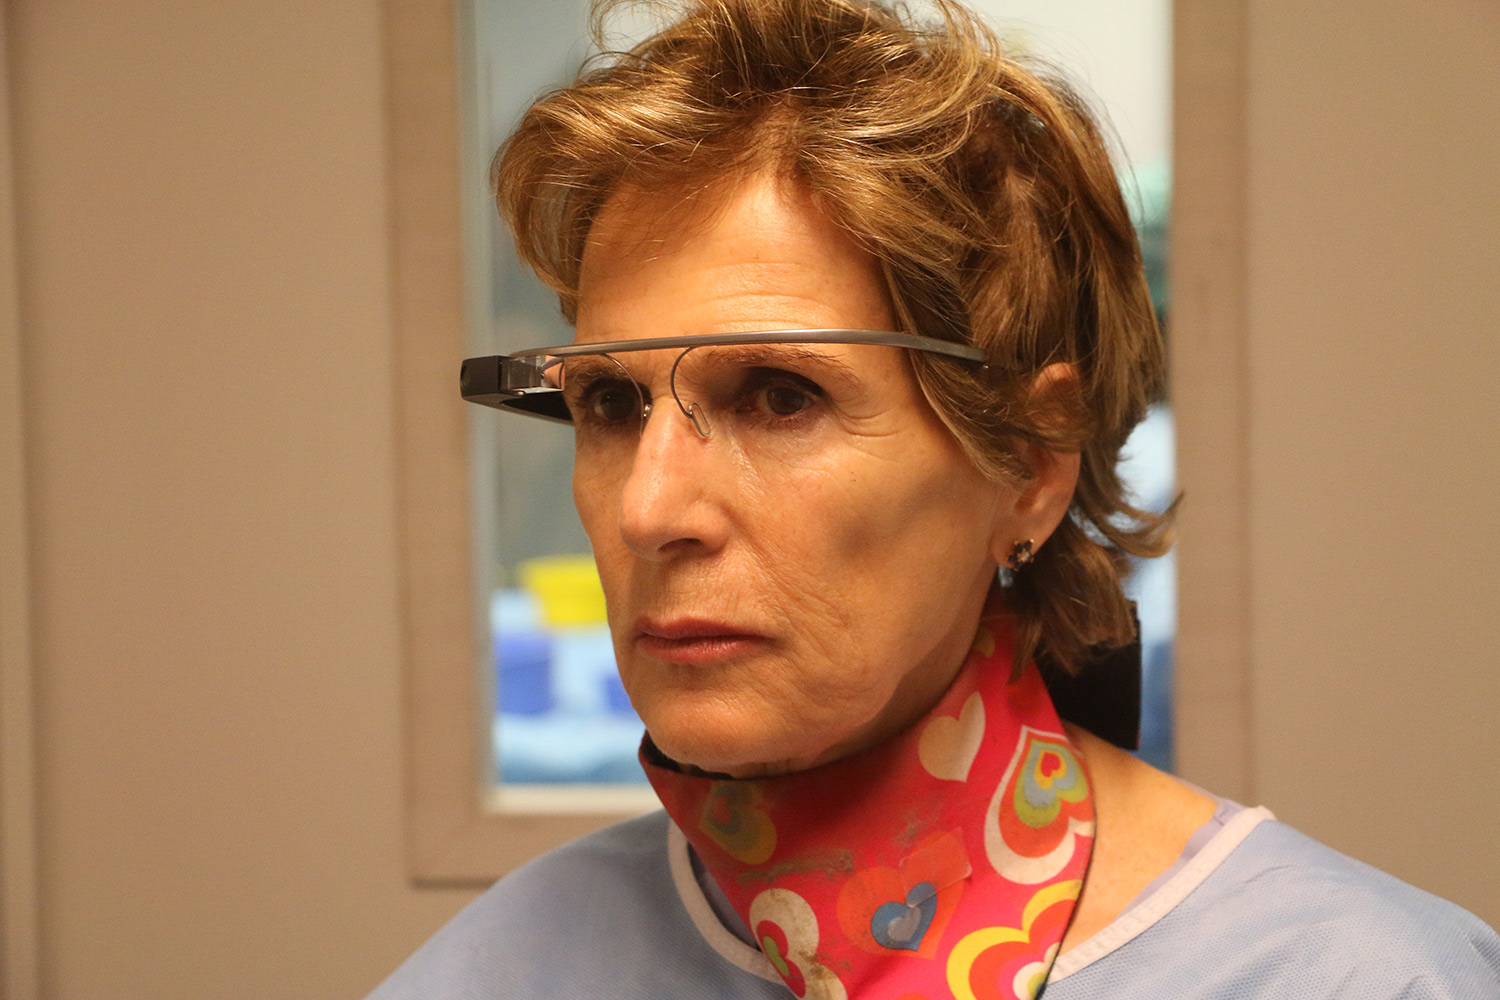 Humanitas-Vidiemme-Google-Glass